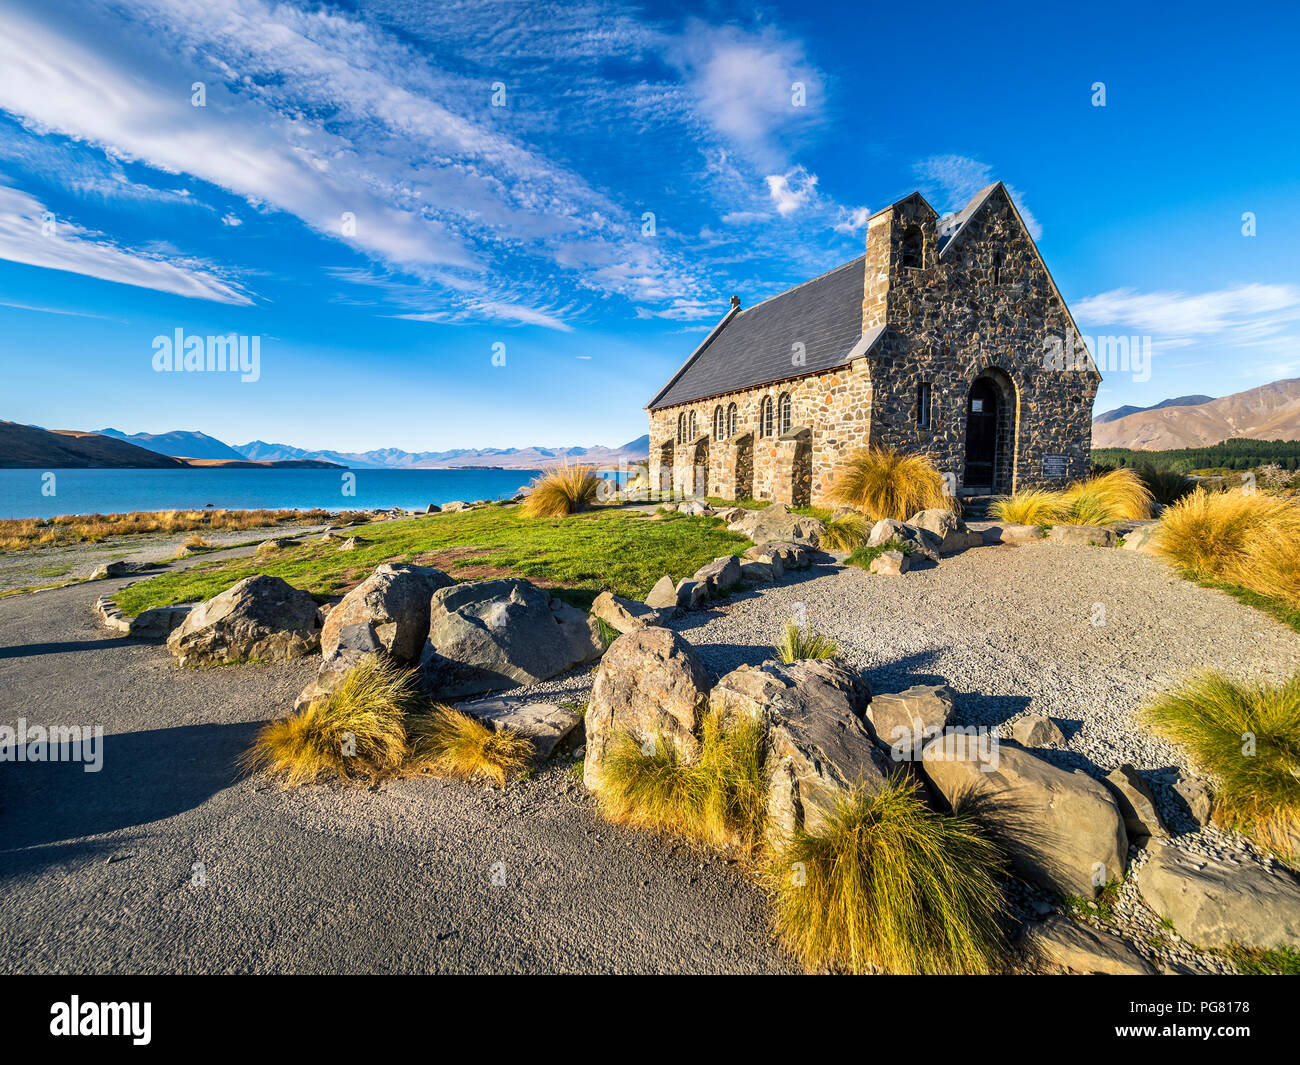 New Zealand, South Island, Canterbury Region, Church of the Good Shepherd - Stock Image